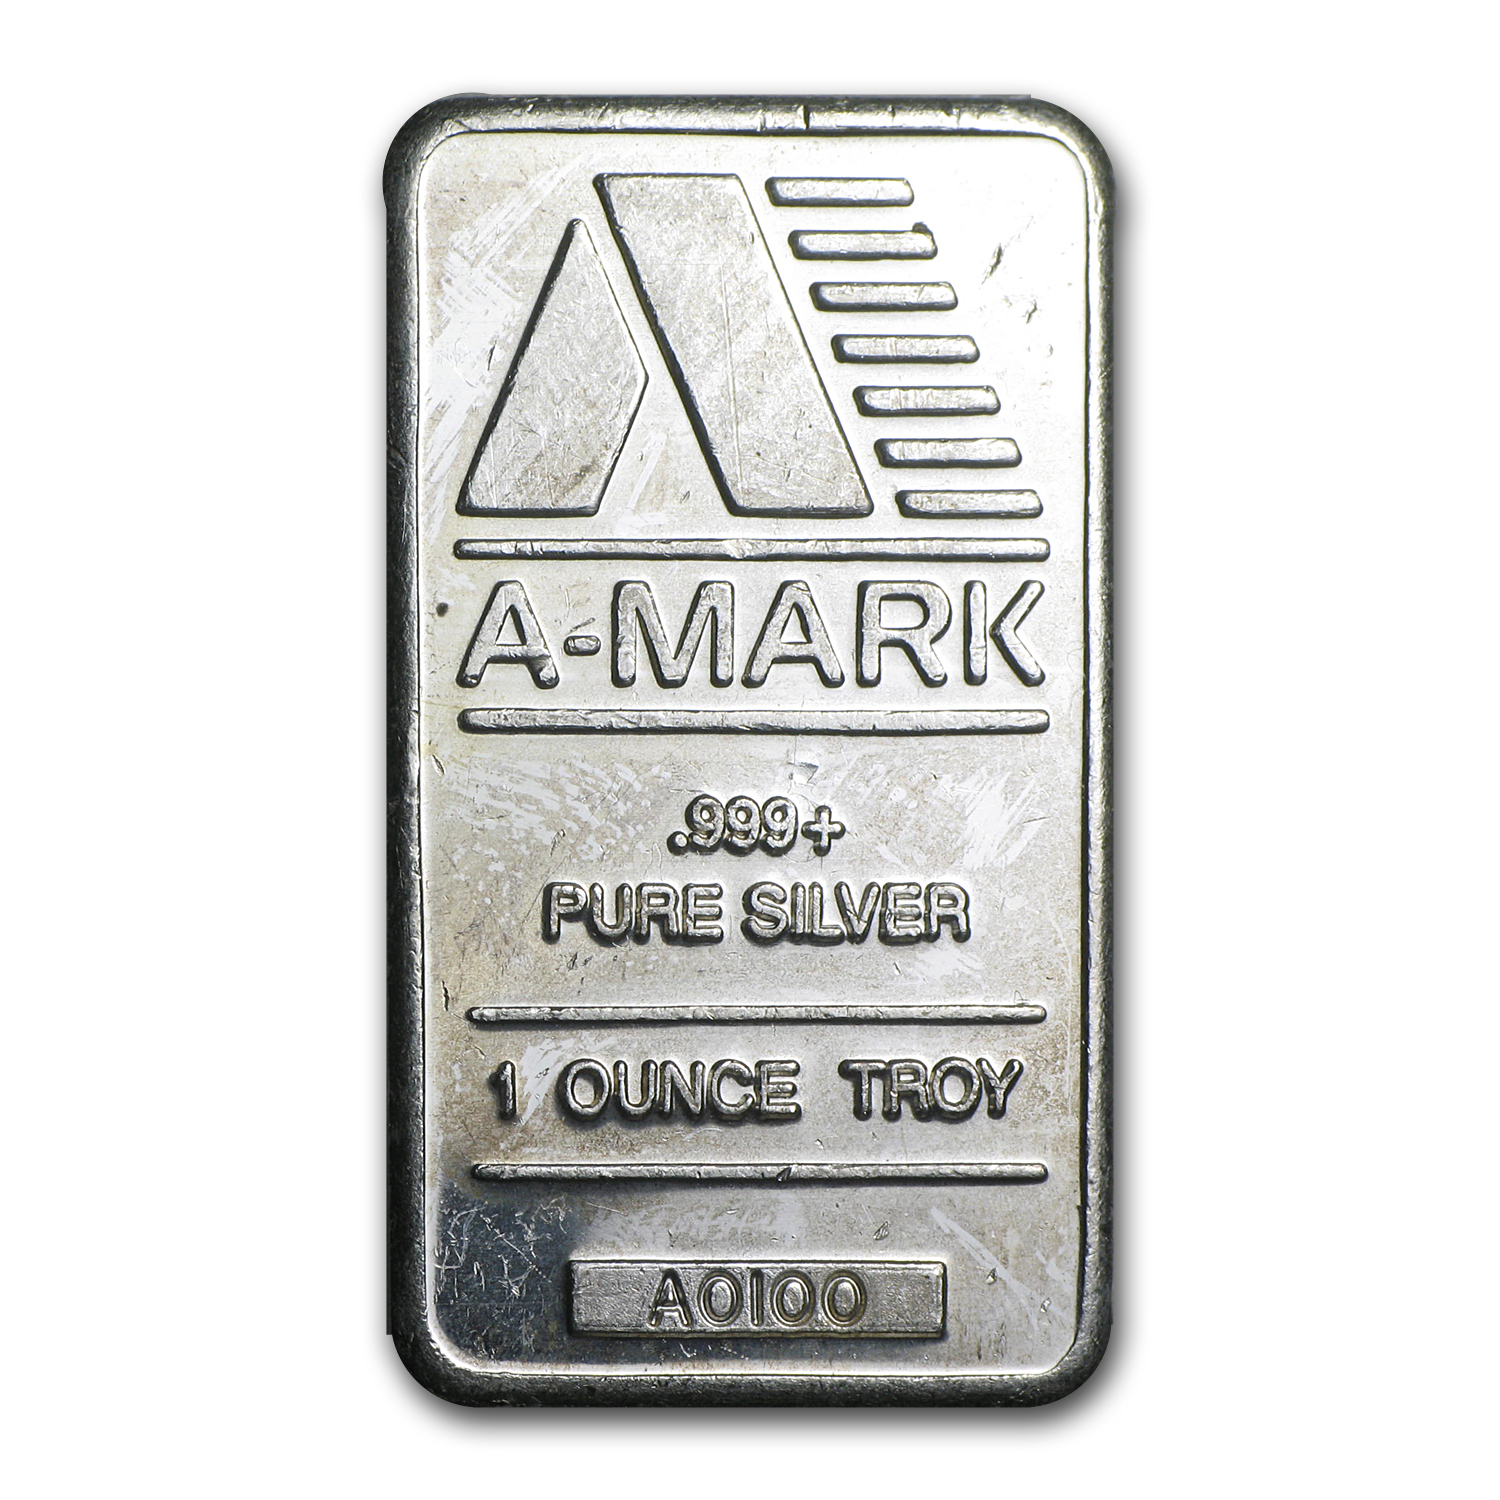 1 oz Silver Bars - A-Mark (Vintage)